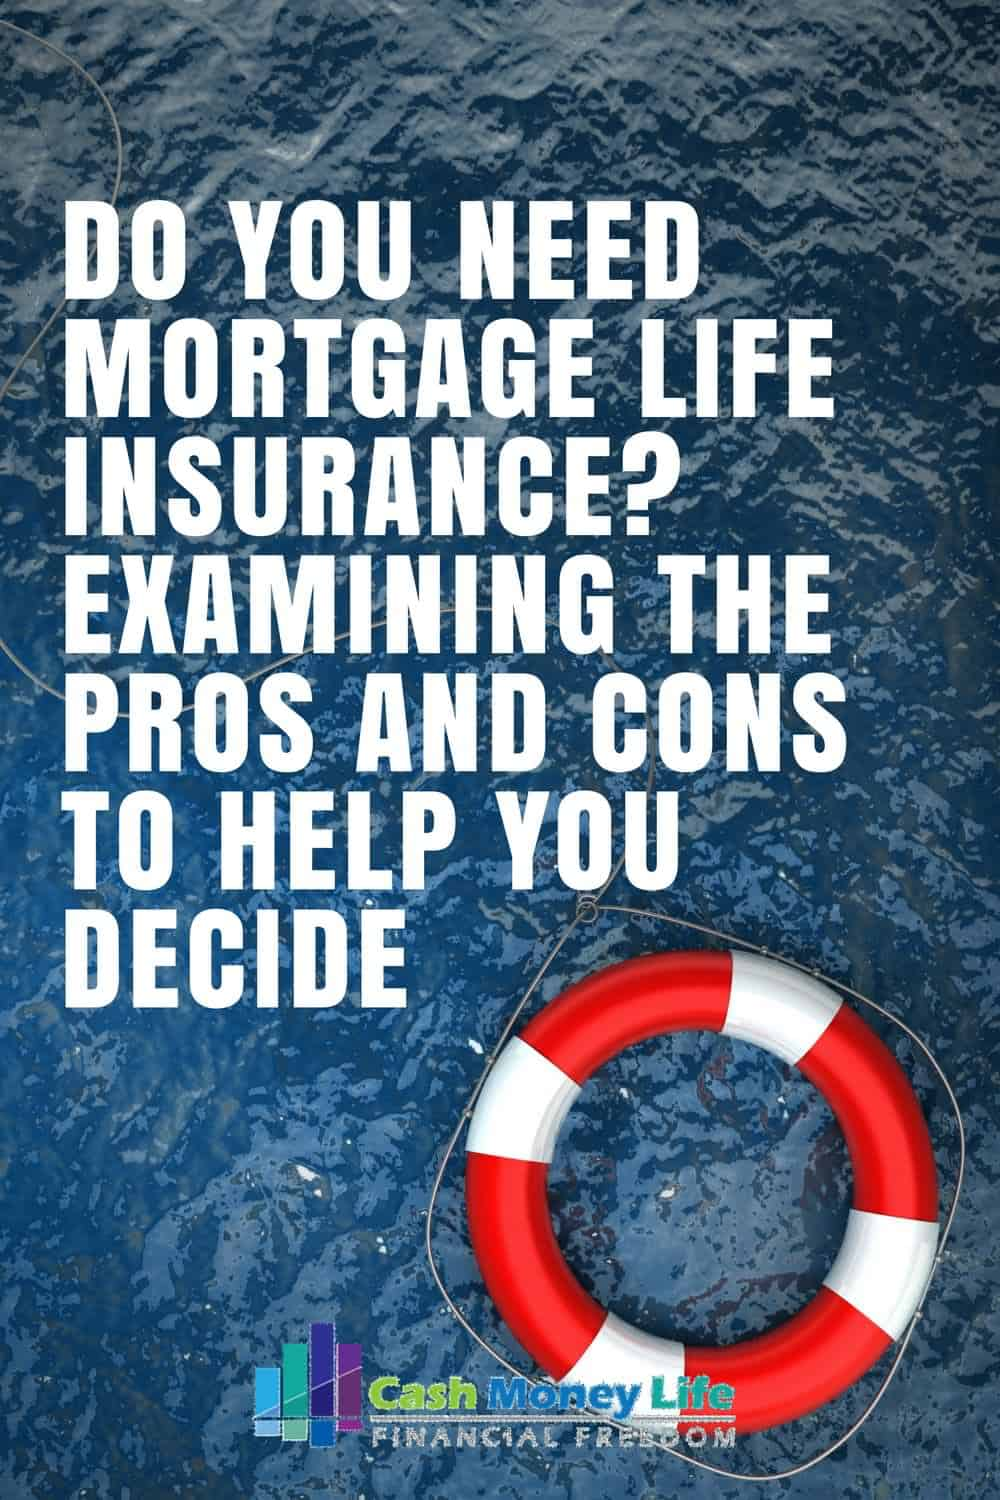 Do You Need Mortgage Life Insurance? Examining the Pros and Cons to Help You Decide